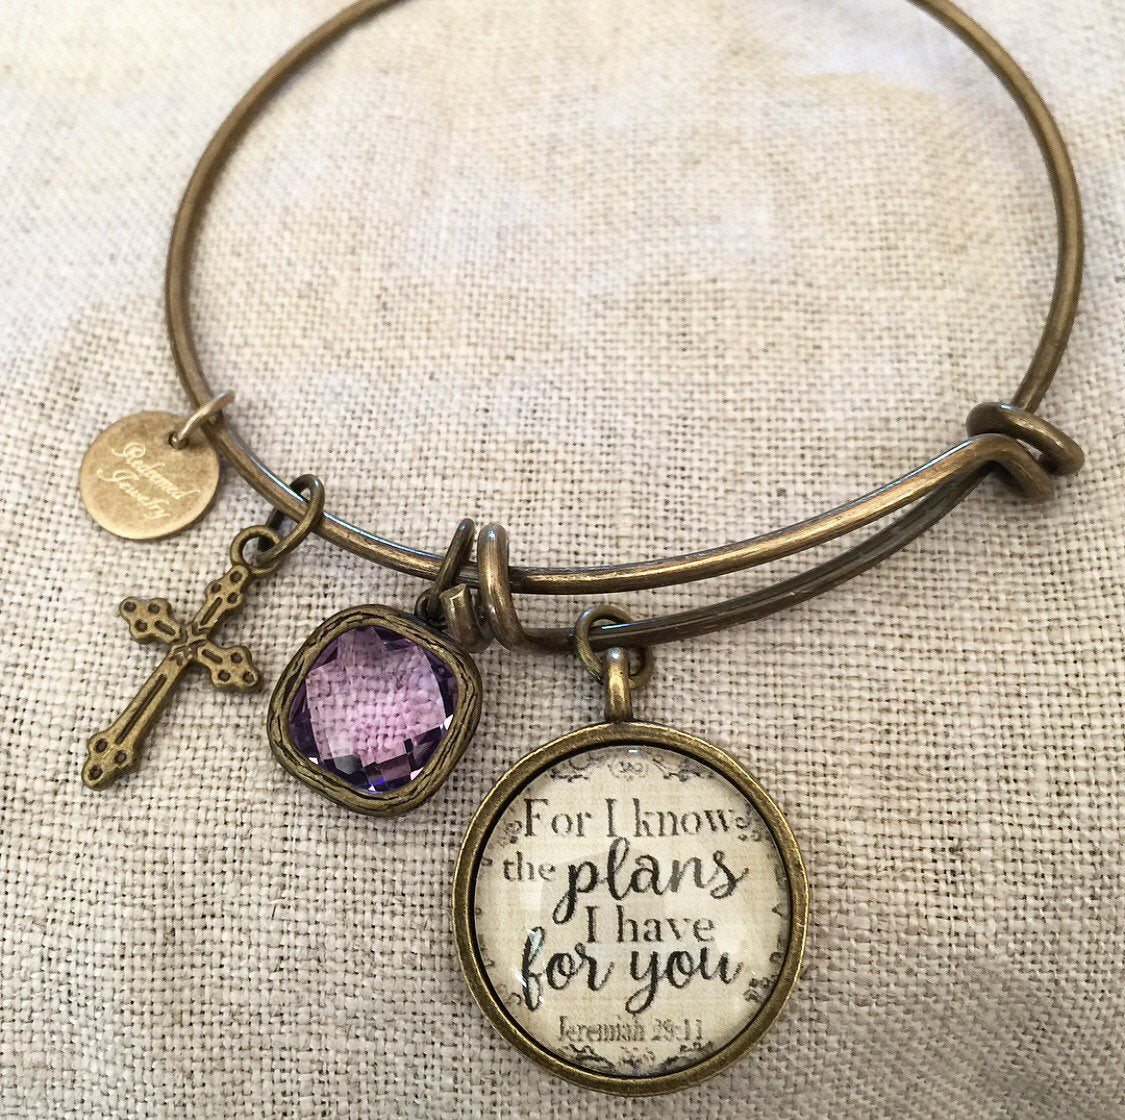 Jeremiah 29:11 Bangle Bracelet - Redeemed Jewelry